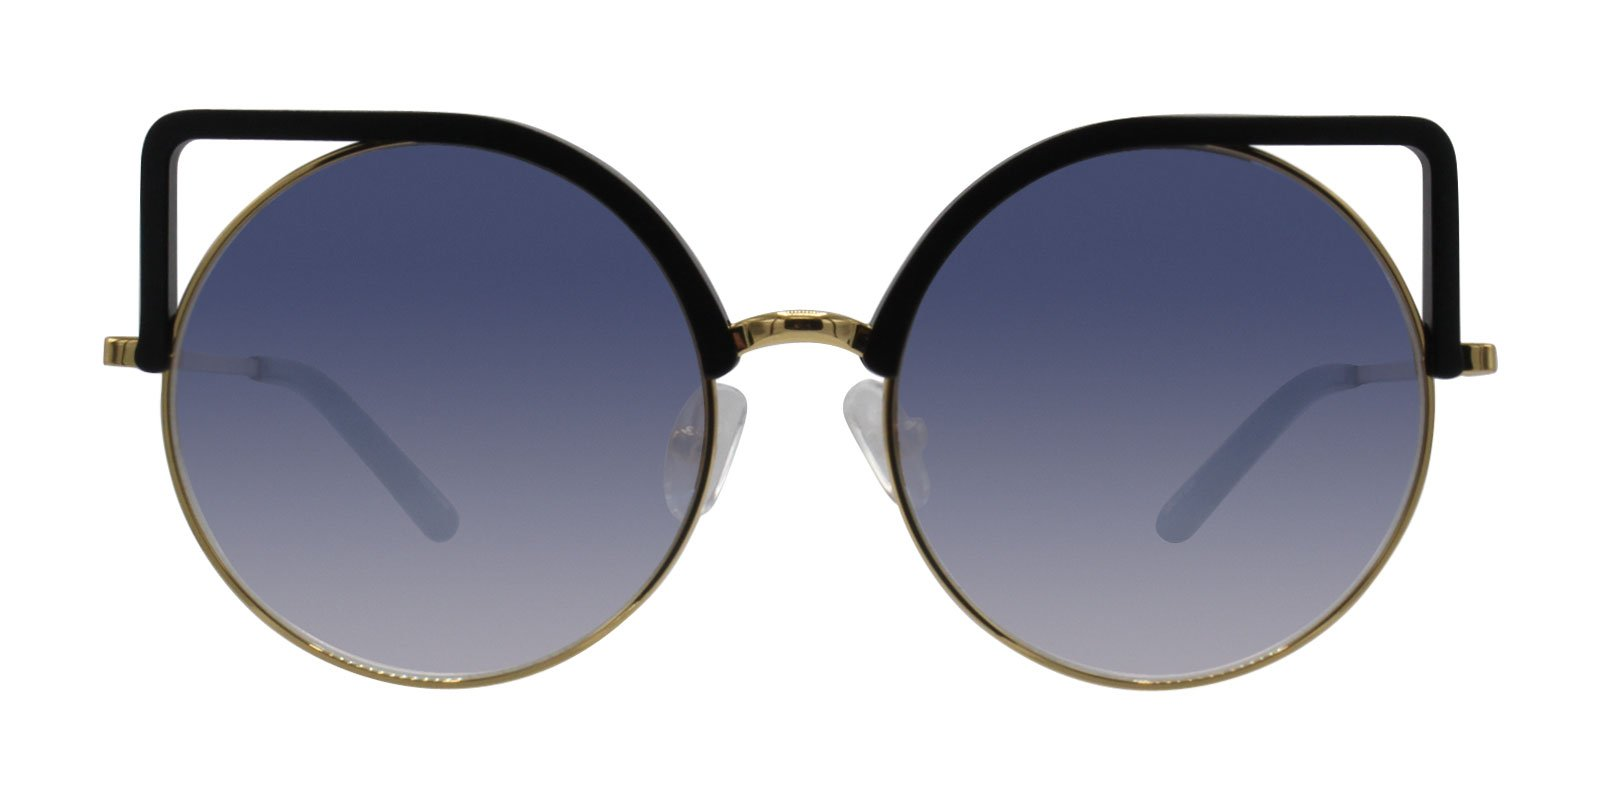 Matthew Williamson - MW169 Black Oval Women Sunglasses - 54mm-Sunglasses-Designer Eyes